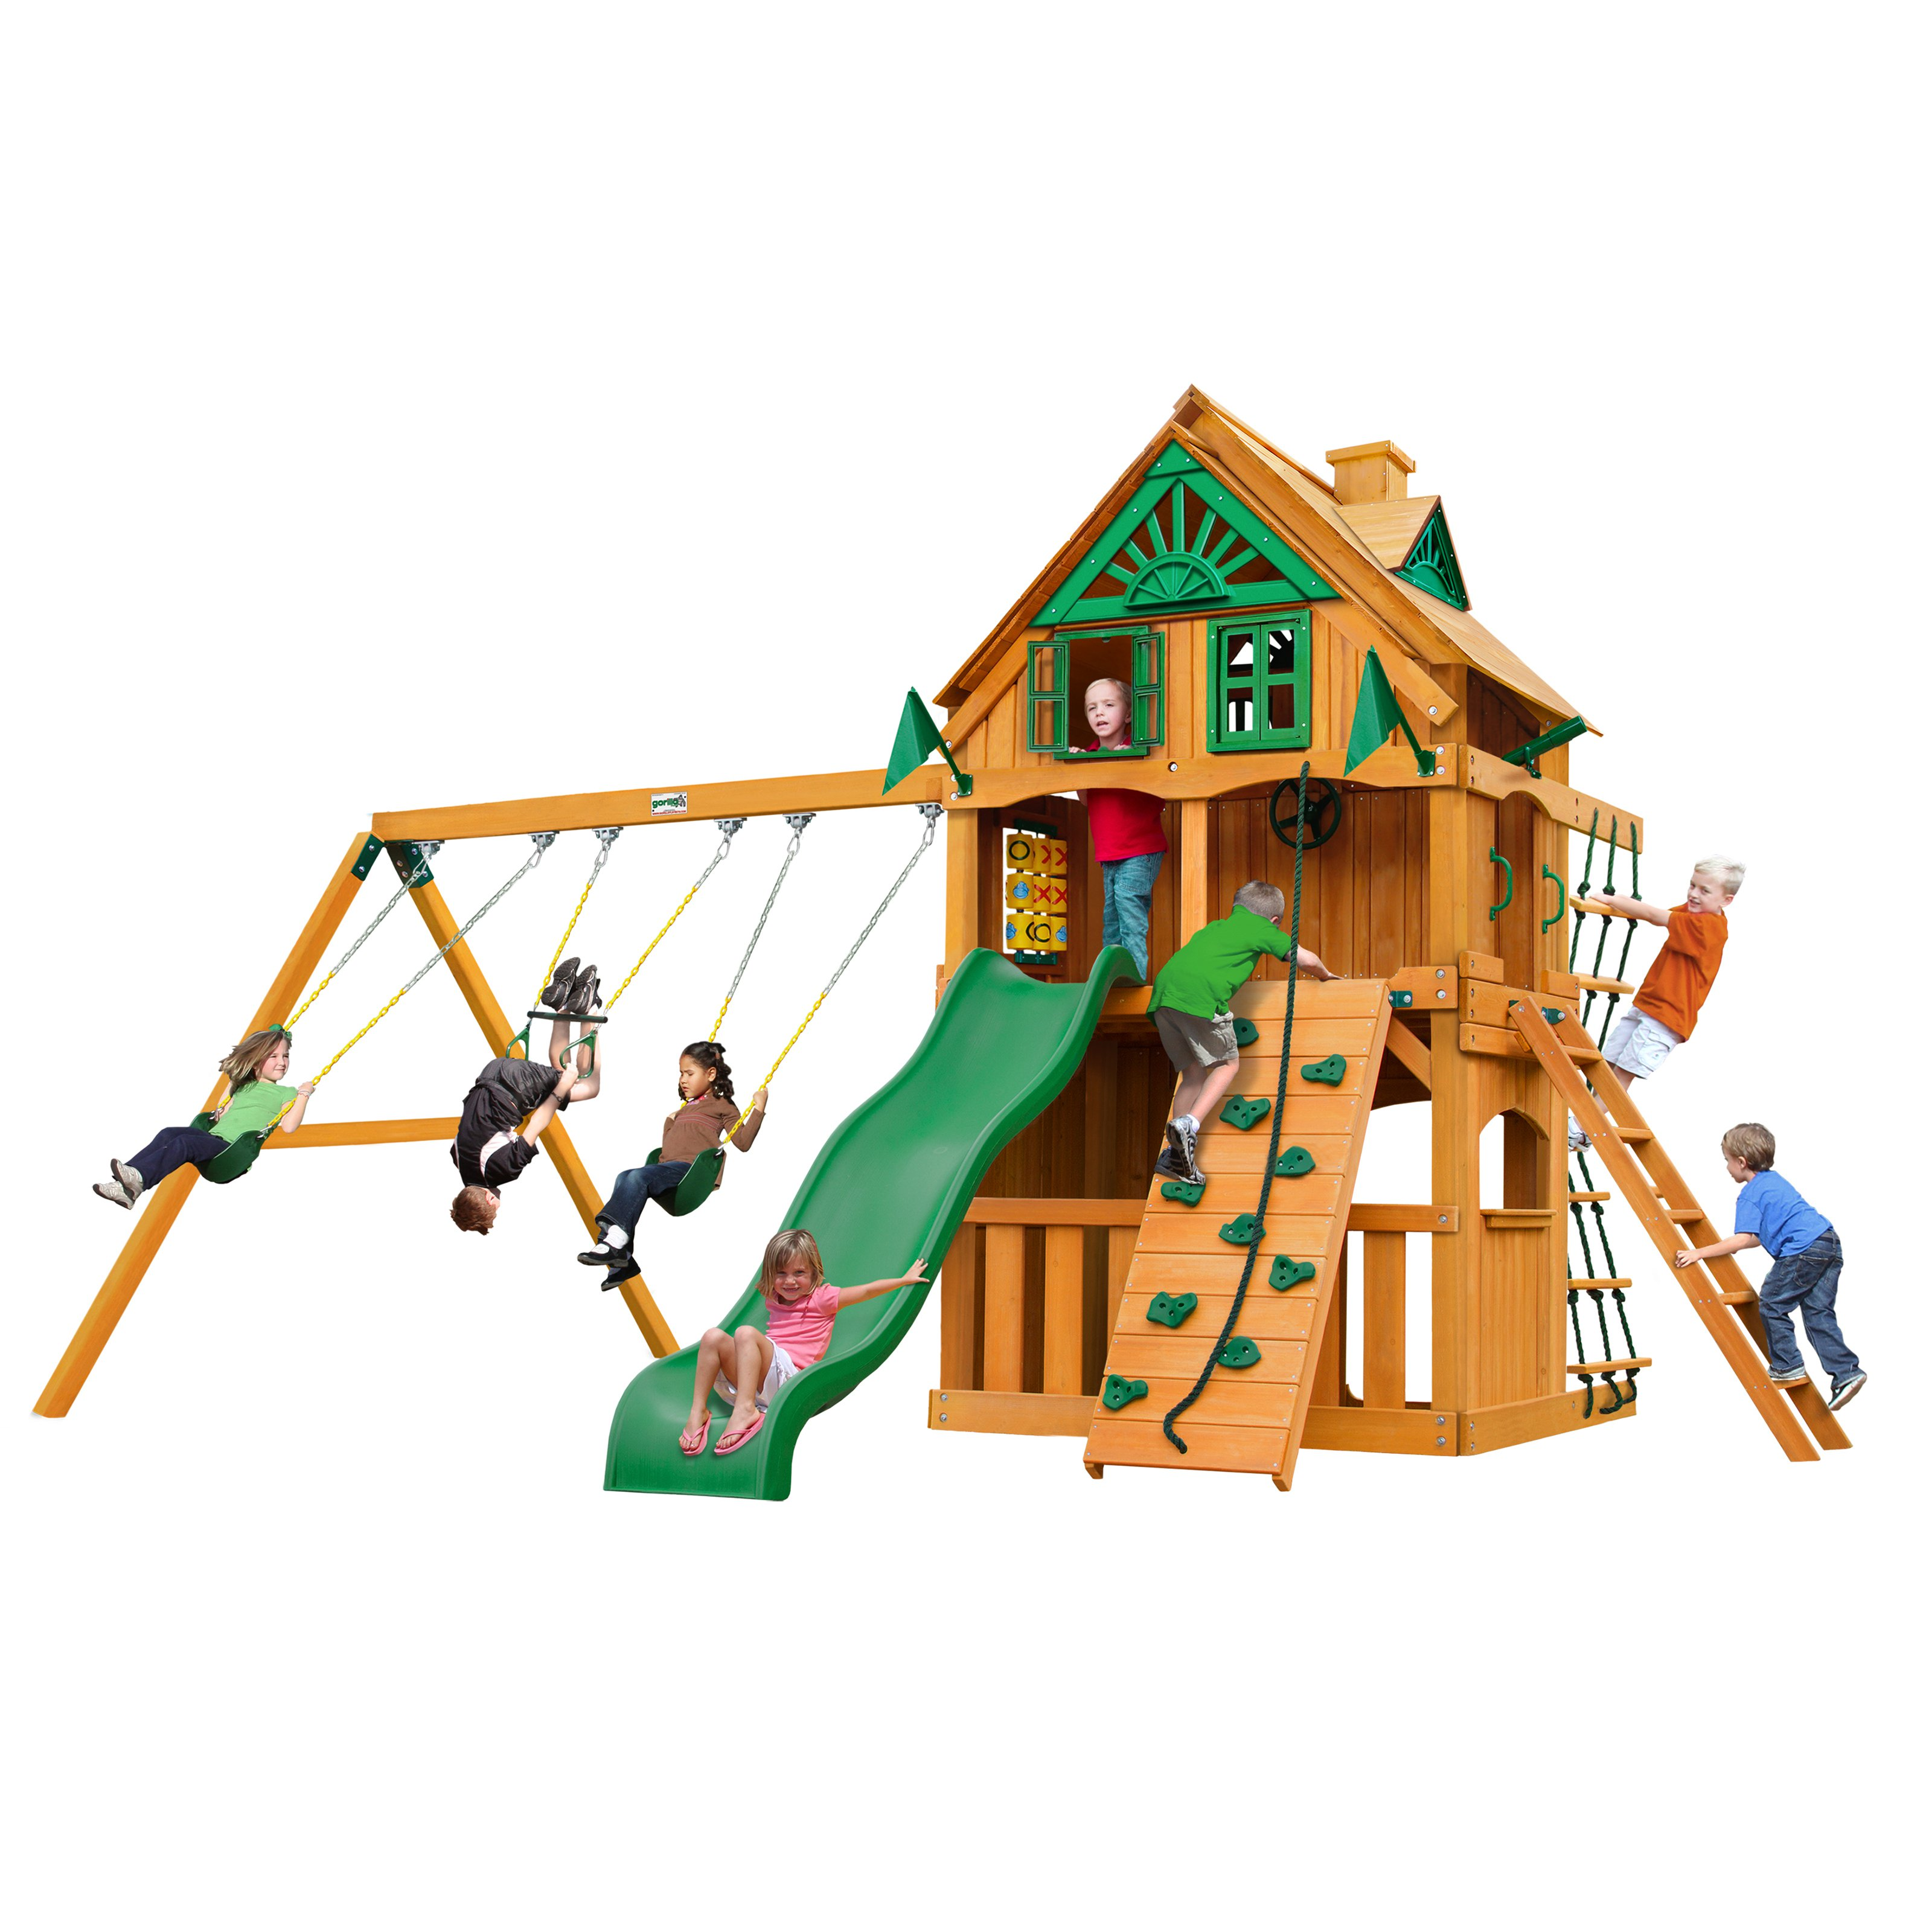 Gorilla Playsets Chateau Clubhouse Treehouse Cedar Swing Set with Fort Add-On and Natural Cedar Posts